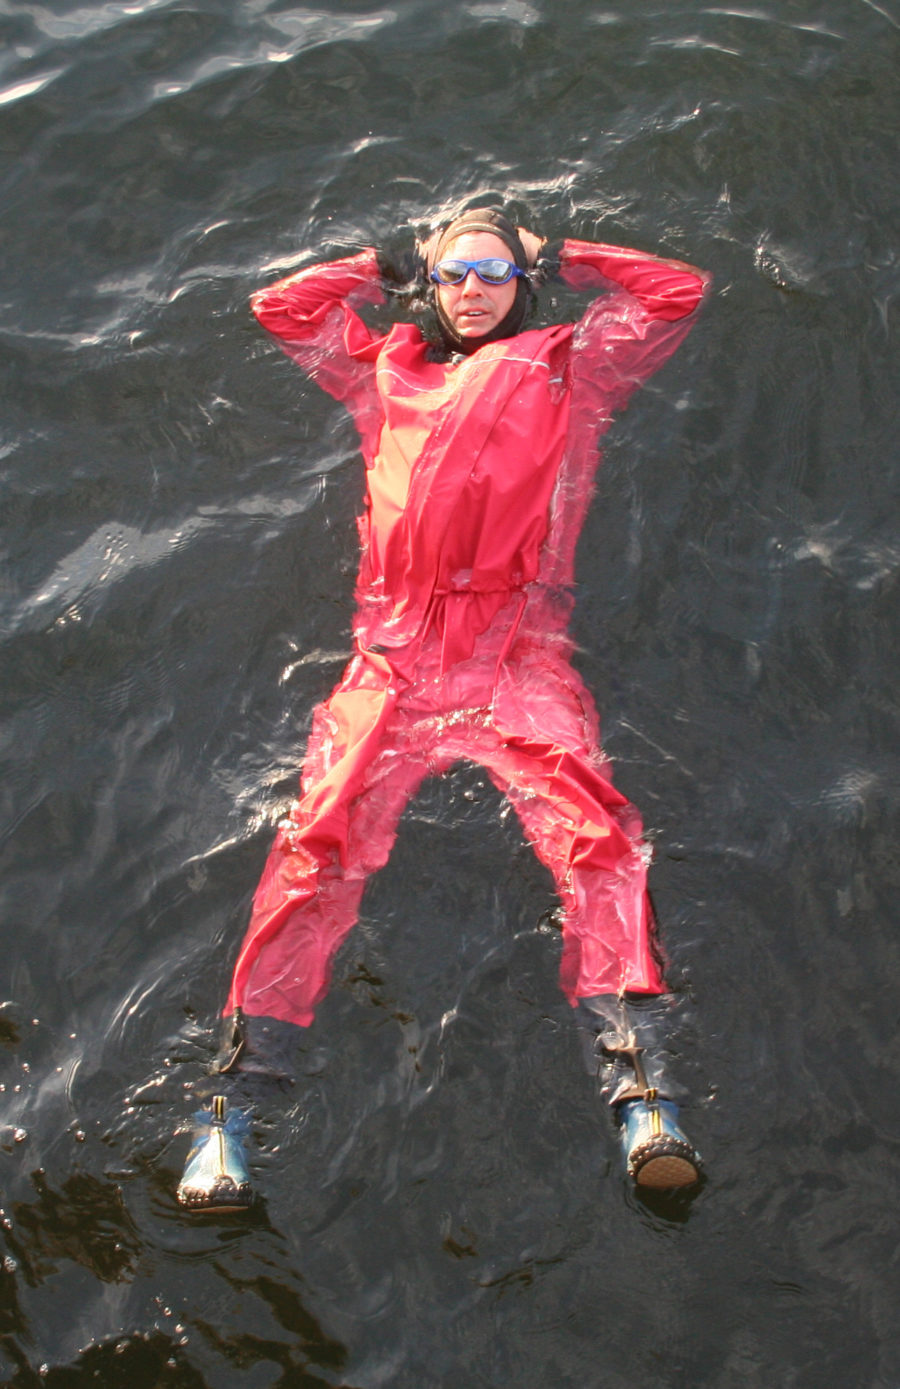 Lounging about in a dry suit is very much like resting on a waterbed. My bare hands chilled quickly and painfully cold, in sharp contrast to the comfort provided by the Matsu suit.